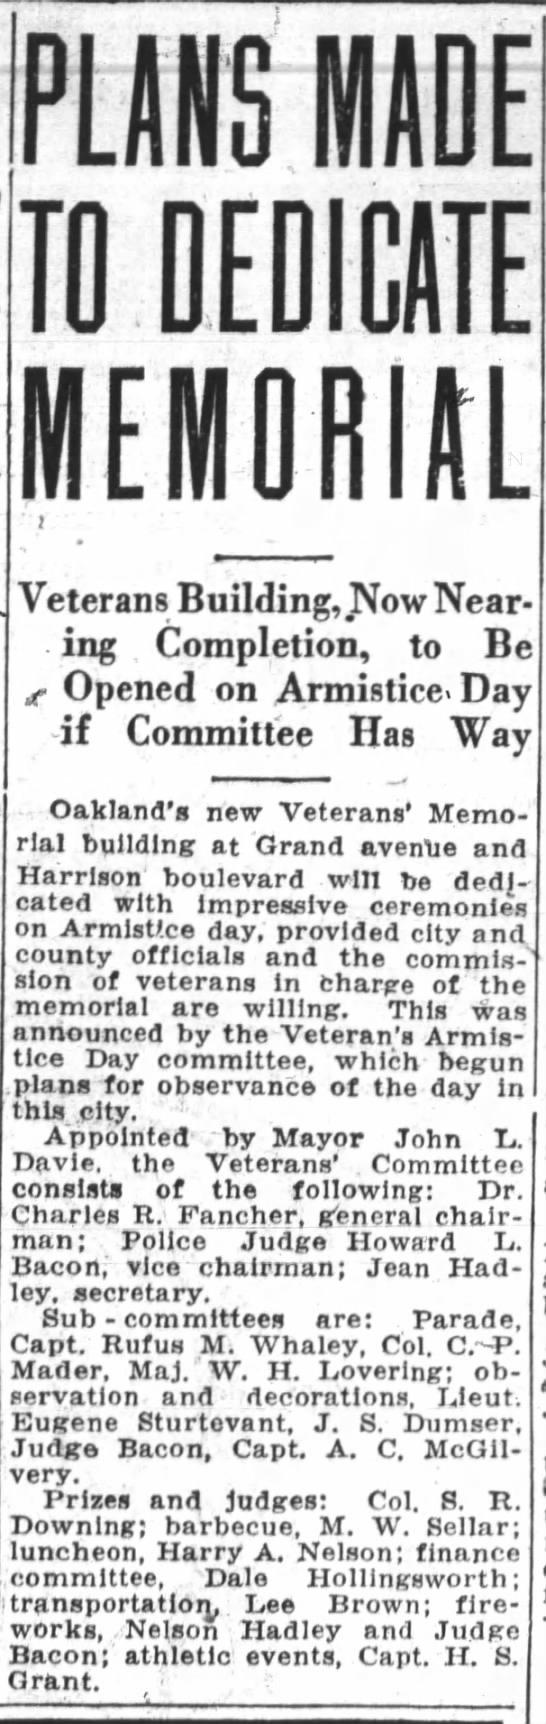 Building To Be Dedicated - Oakland Tribune September 17, 1928 -